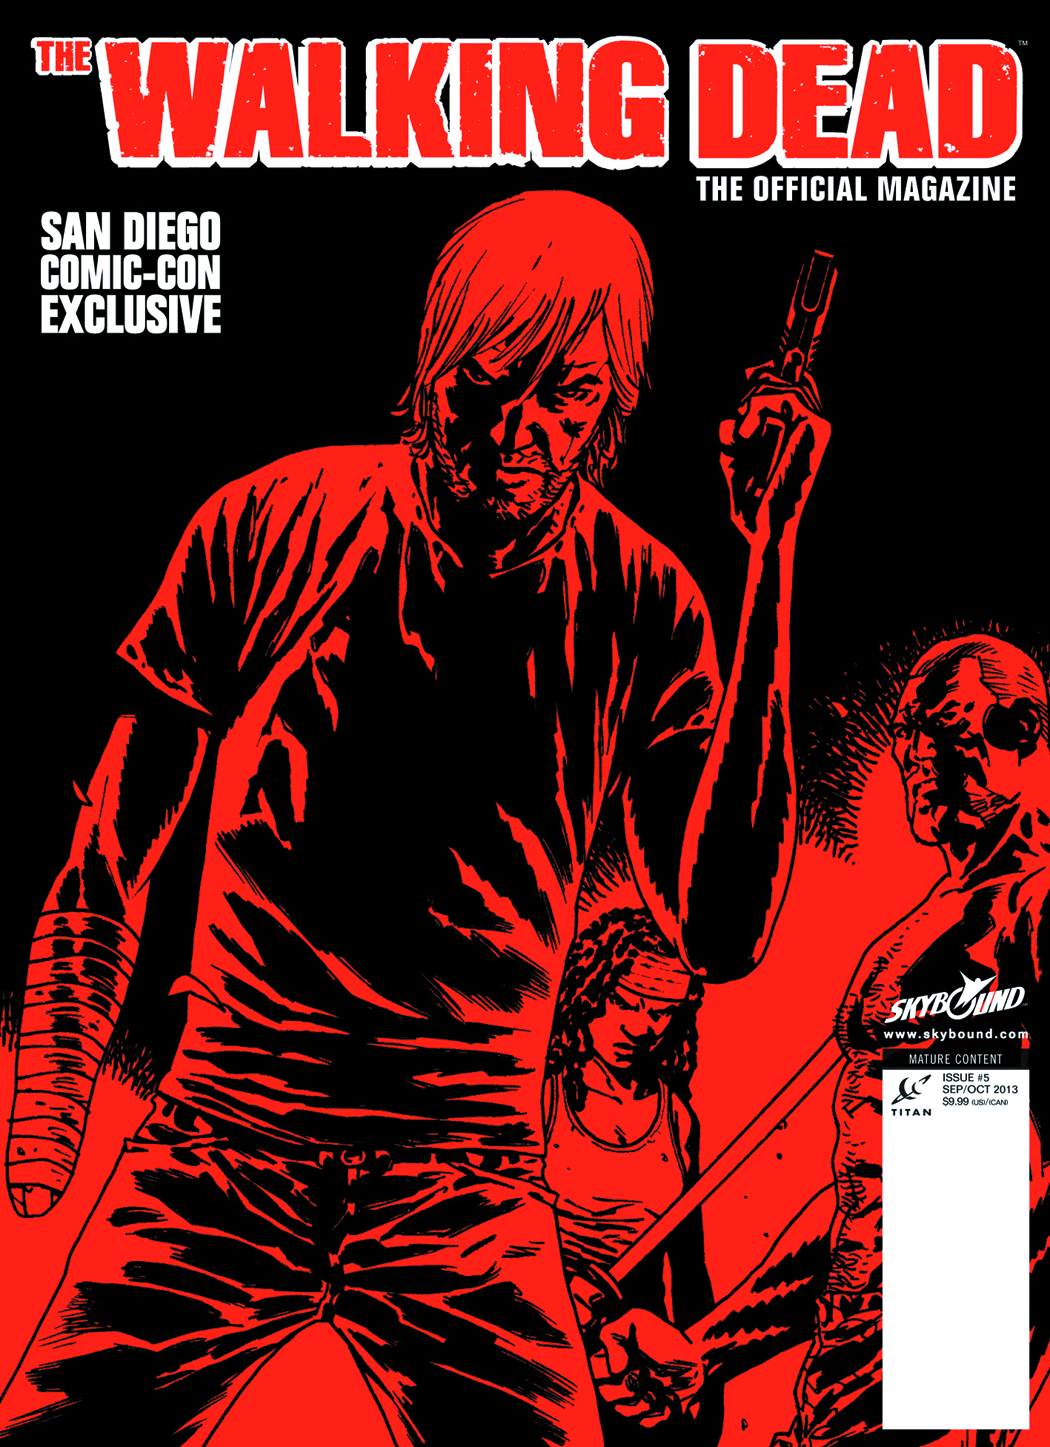 WALKING DEAD MAGAZINE #5 SDCC EXCLUSIVE COVER